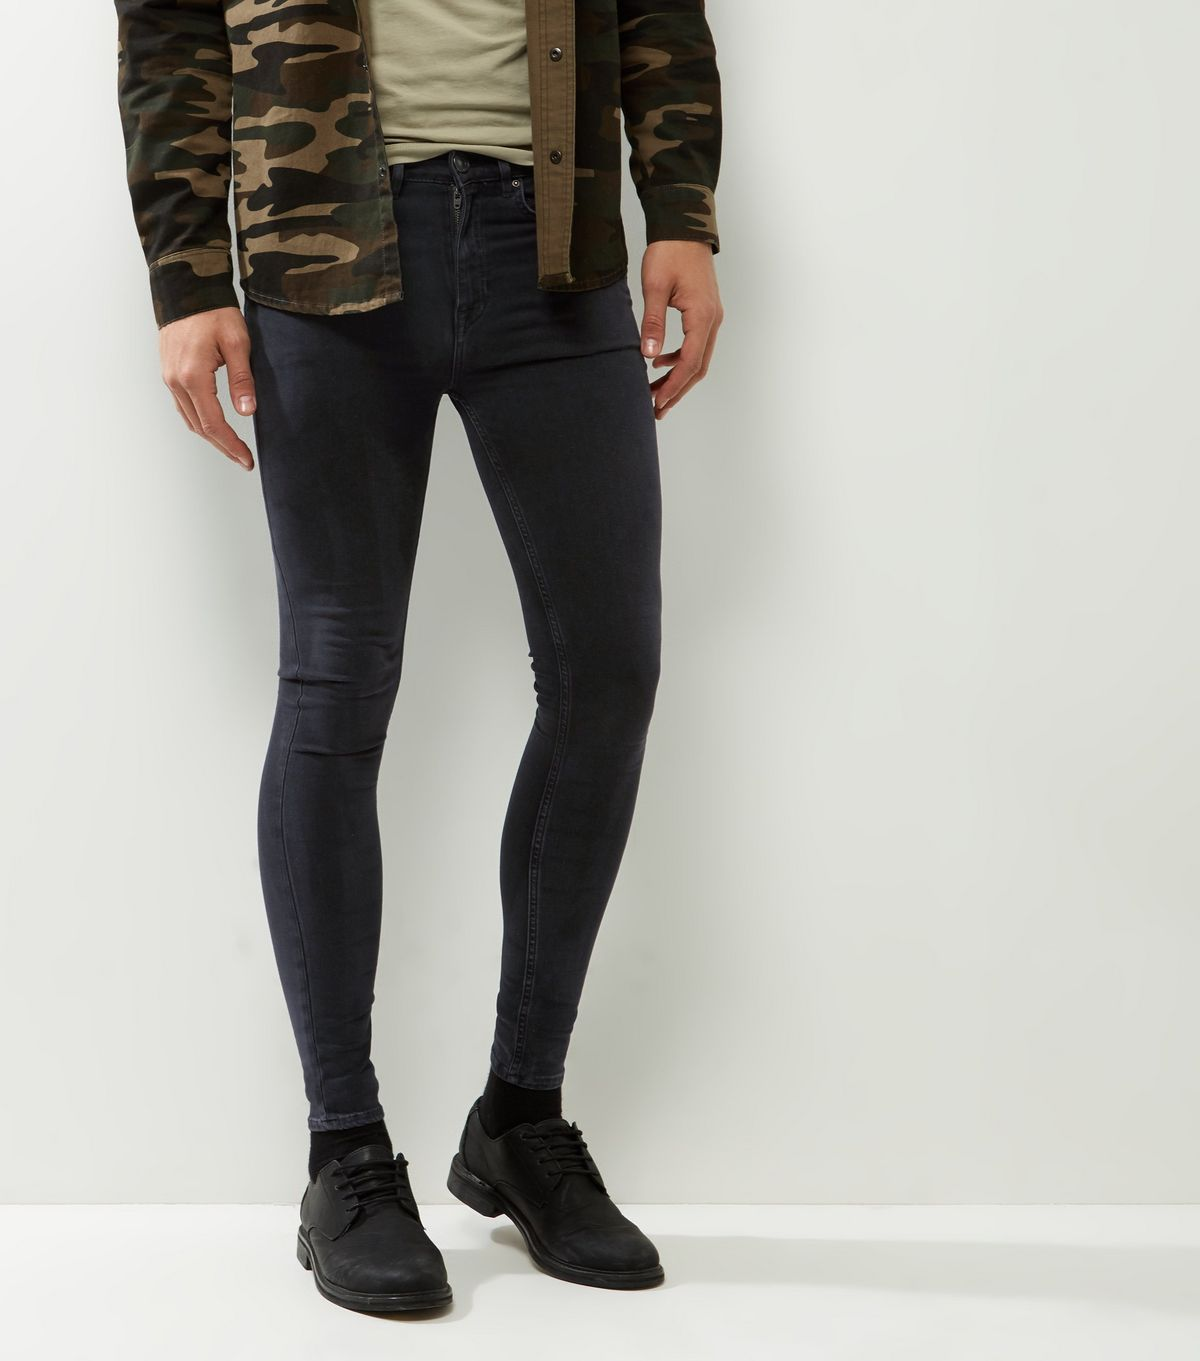 Discover our men's super skinny jeans at ASOS which are perfect for the fashion forward denim enthusiast. A great way to add some rock star cool to your look.